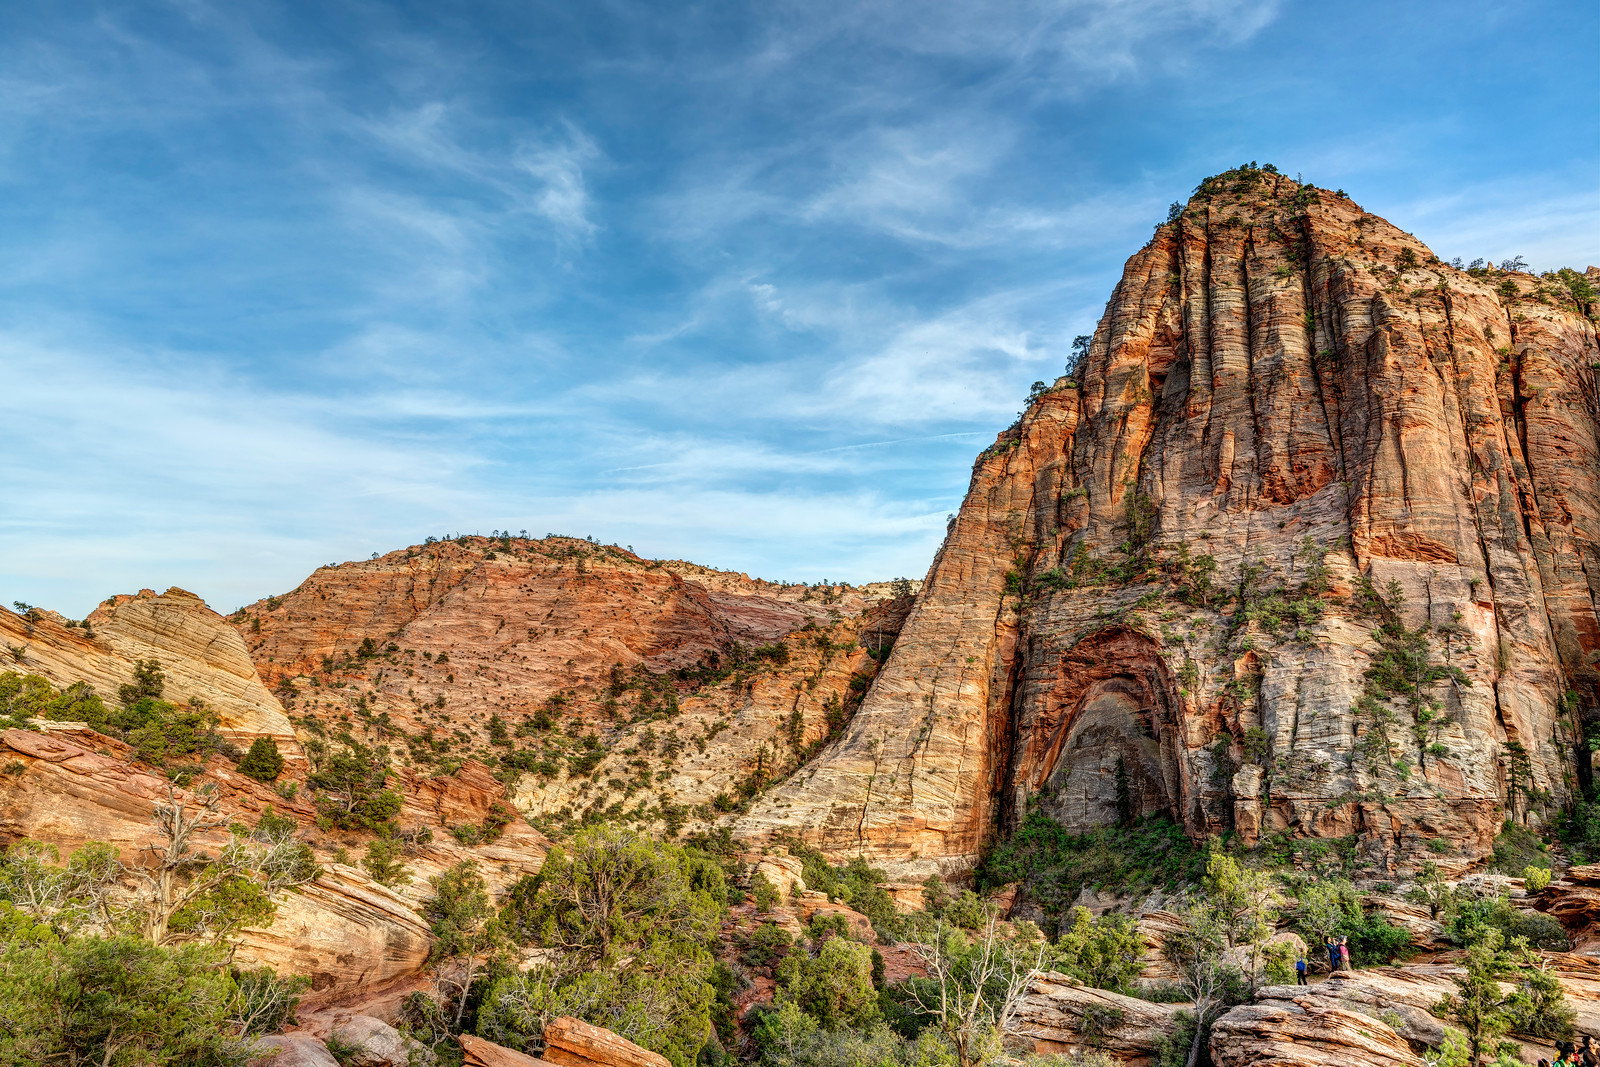 A Different View at Zion's Canyon Overlook